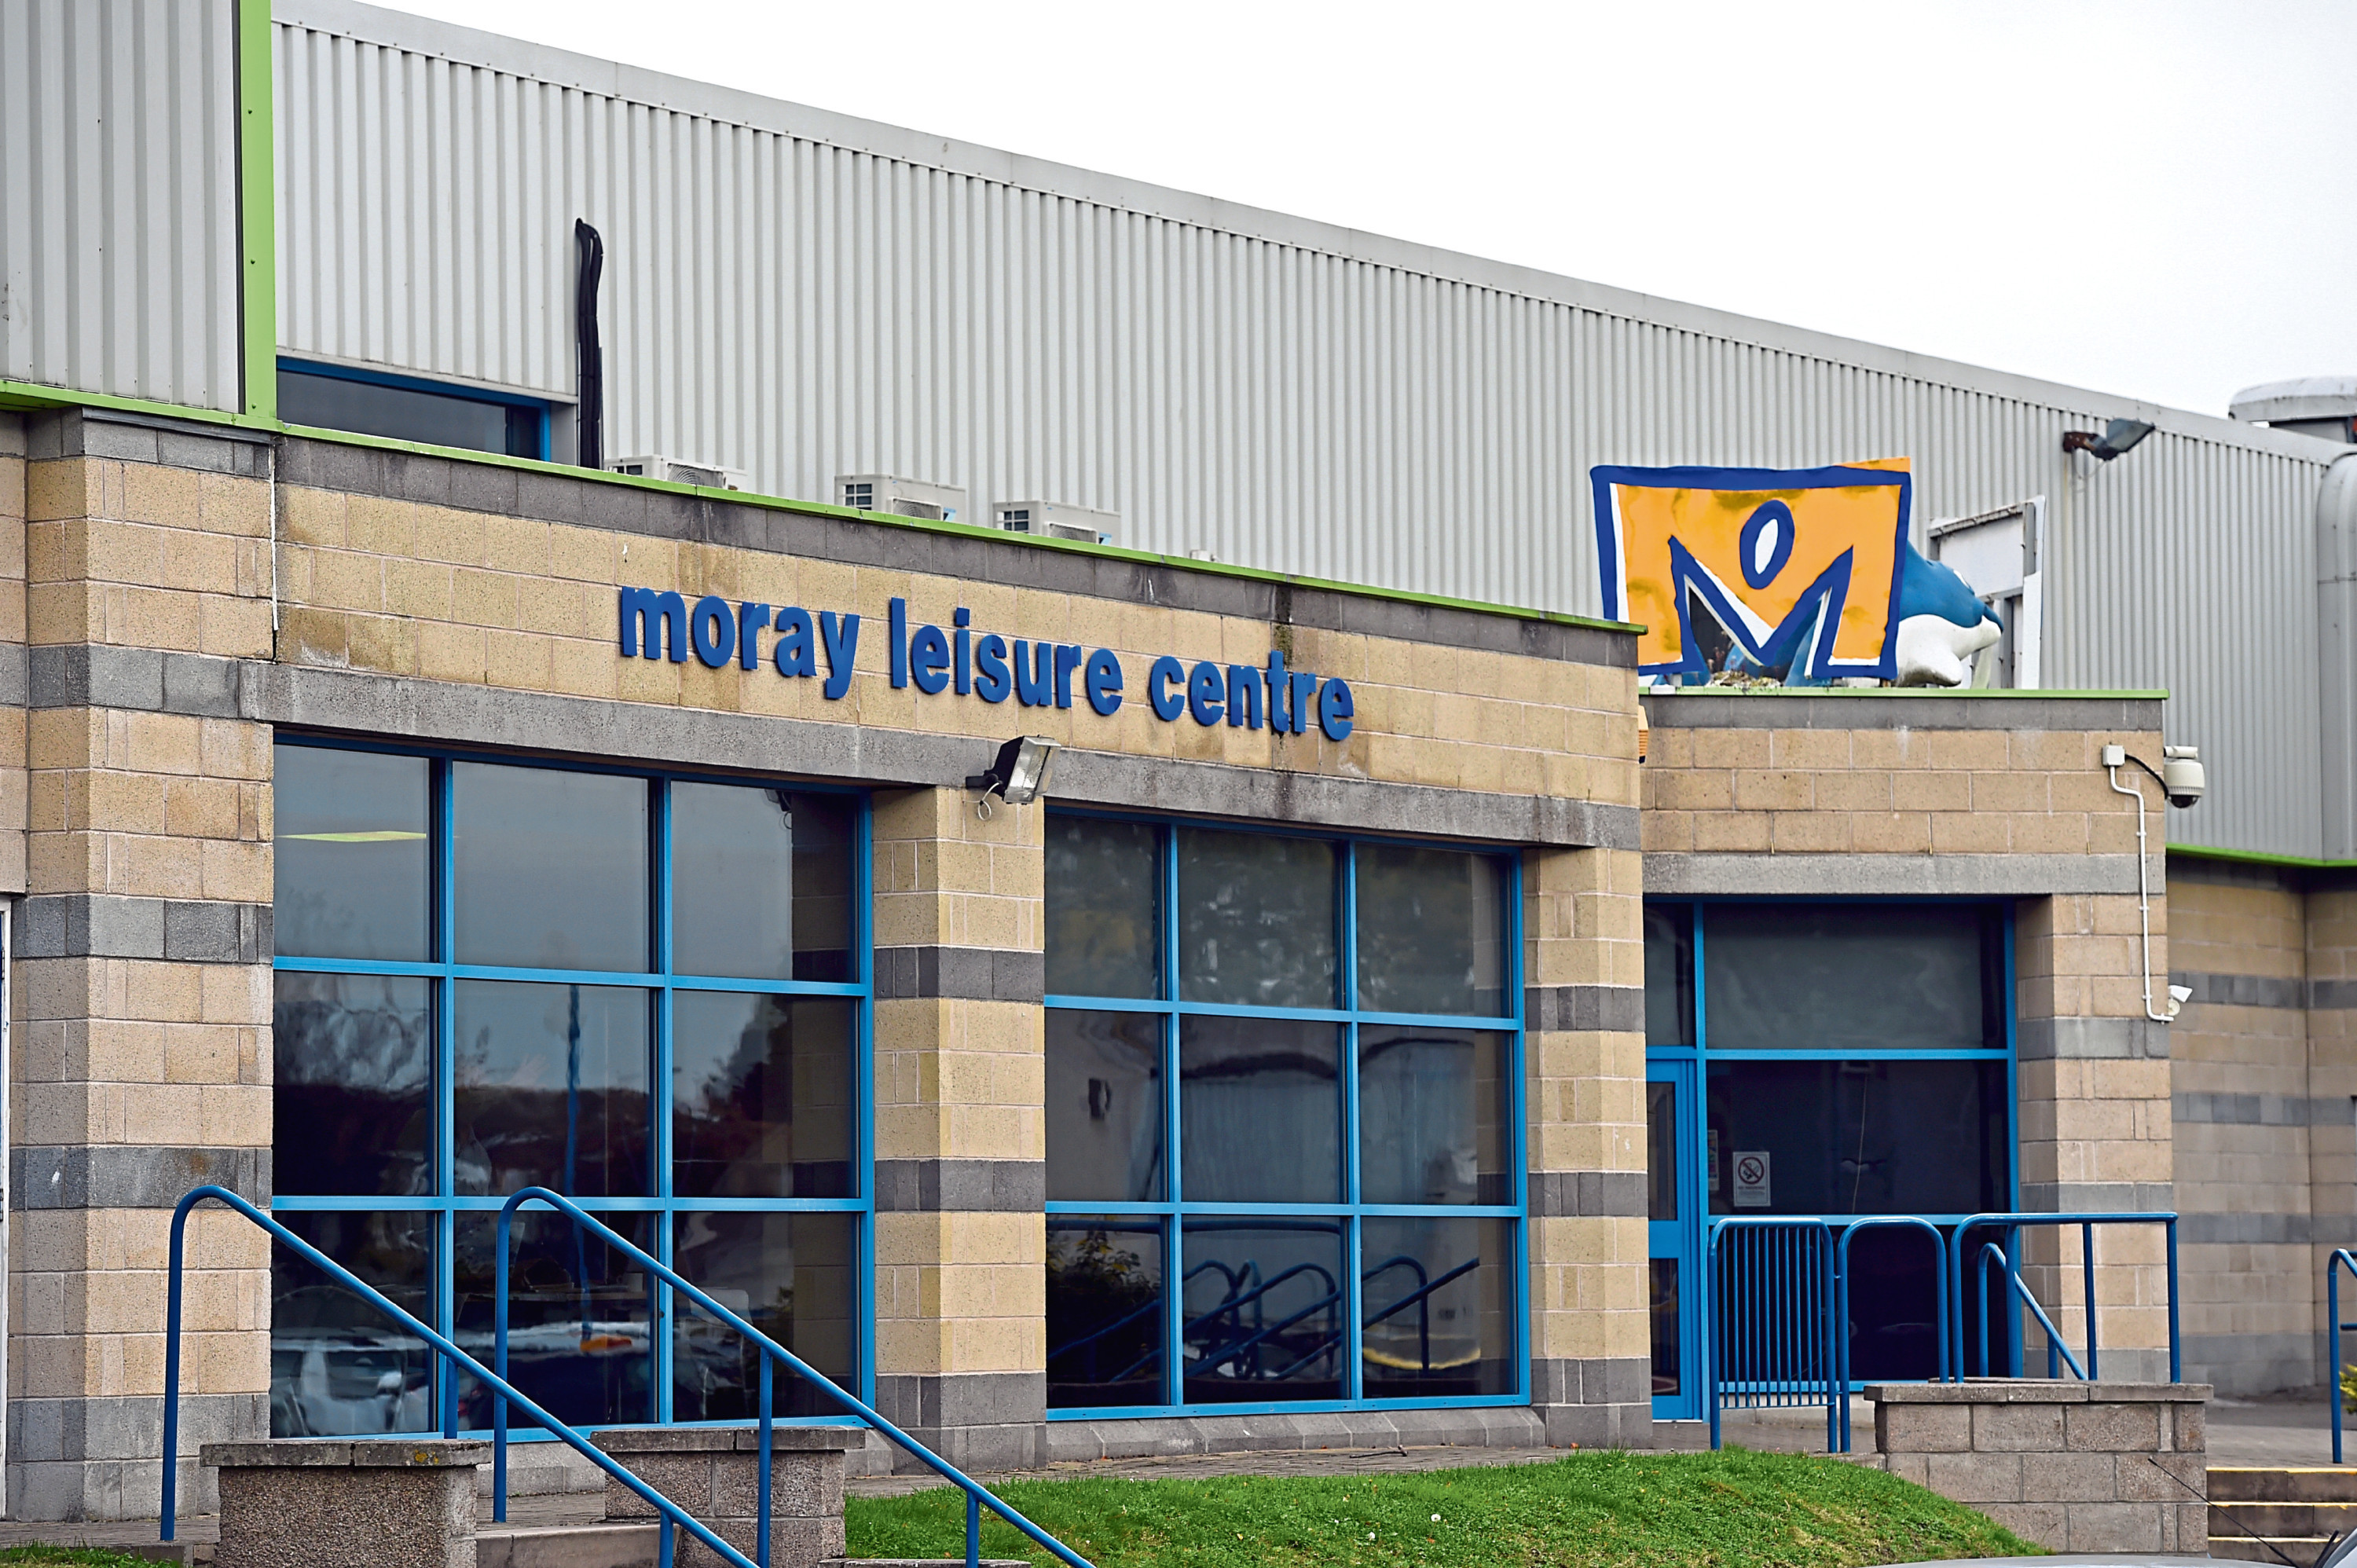 Moray Leisure Centre